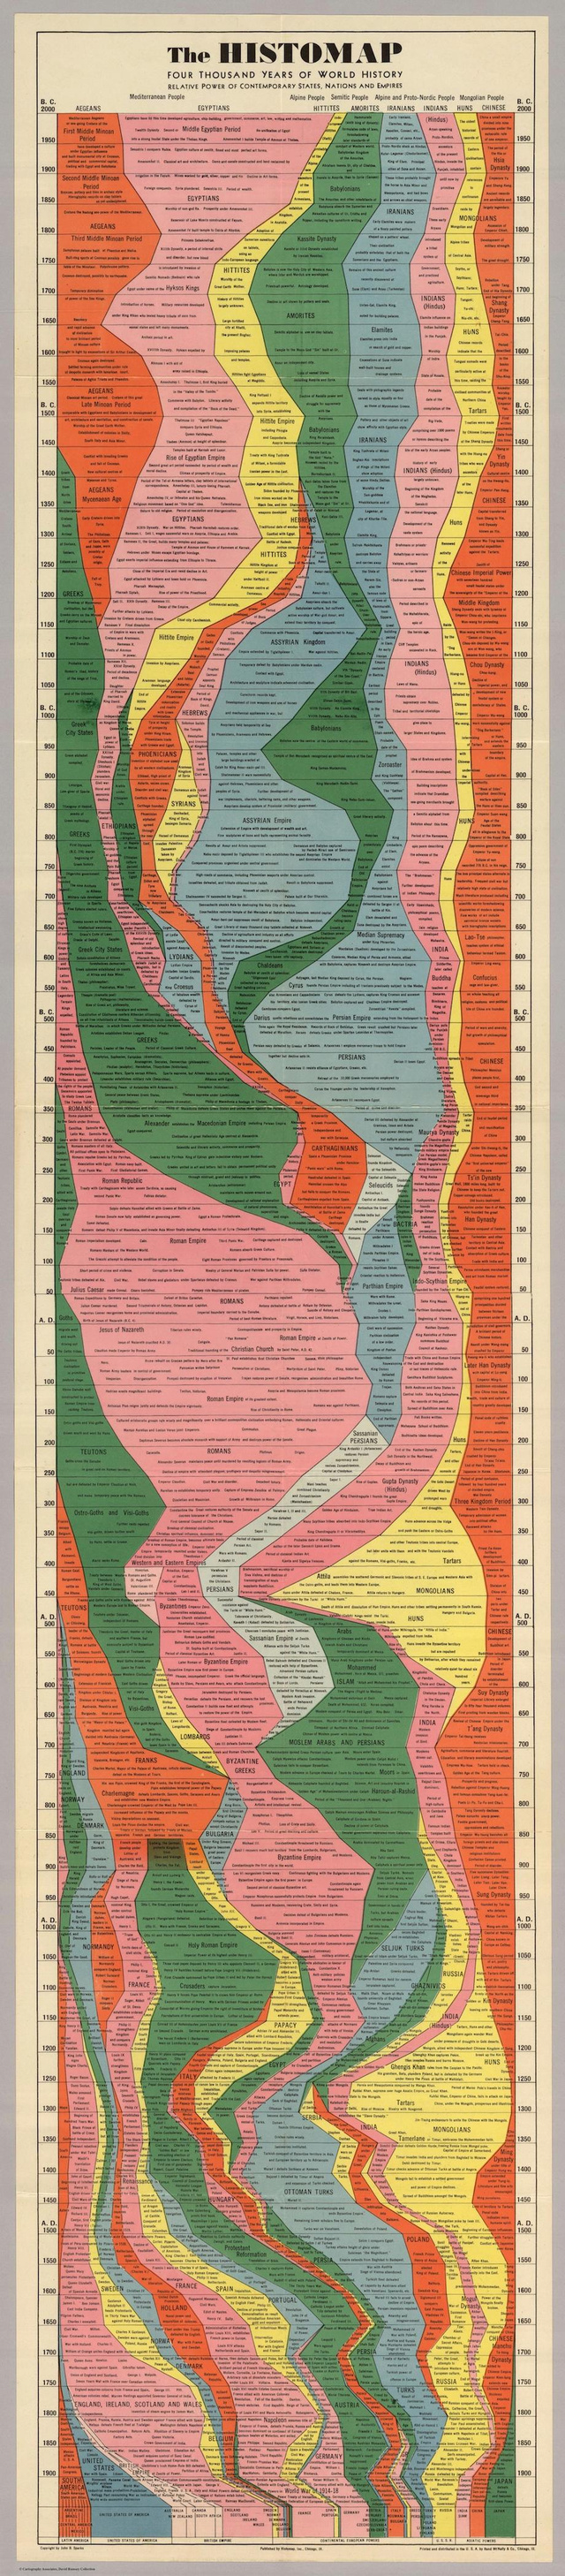 All Hail Histomap: 4,000 Years of History in a Single Poster